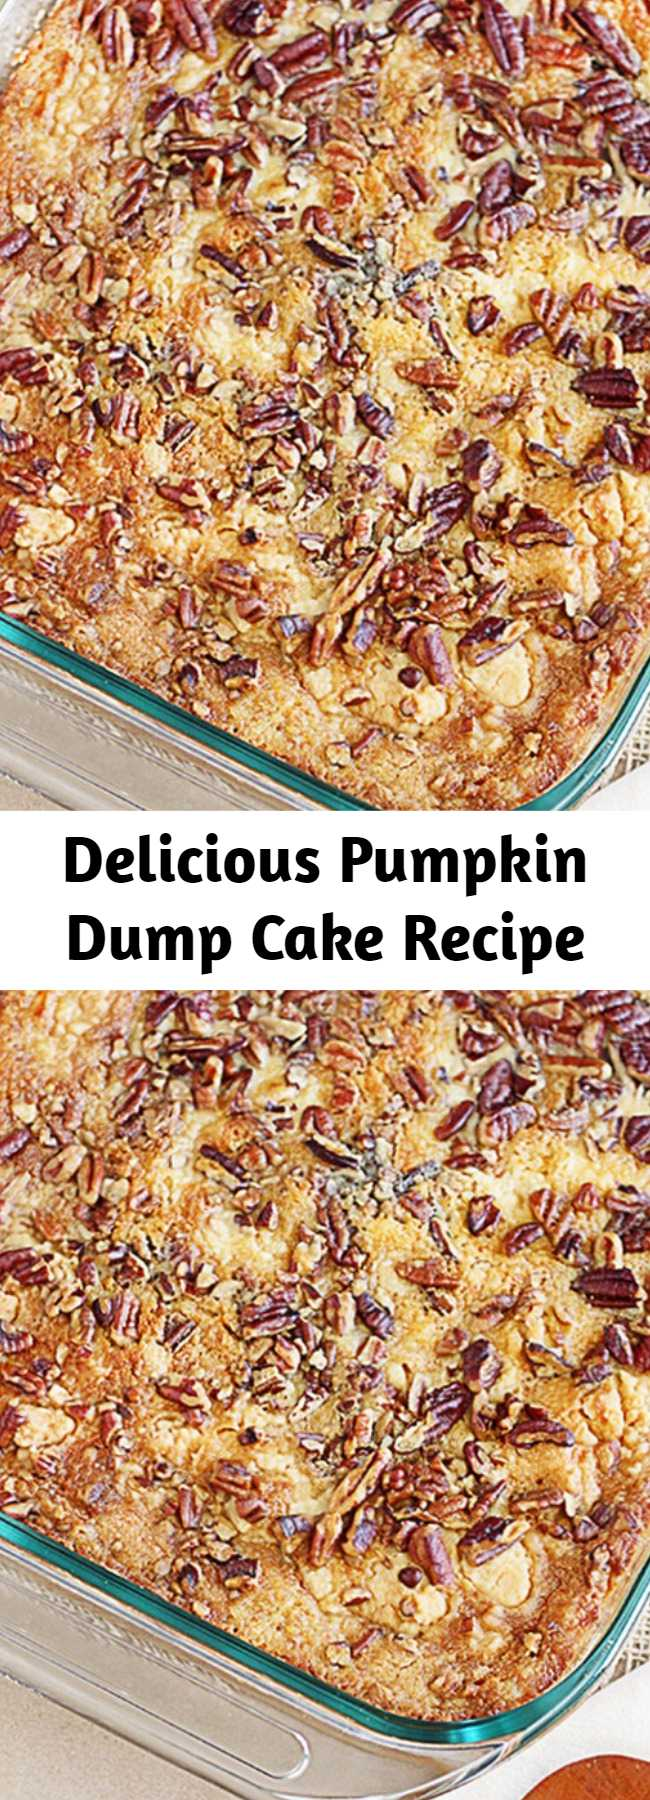 Delicious Pumpkin Dump Cake Recipe - This recipe is a sure fire win for all of you pumpkin lovers!  Yellow cake mix, pumpkin, butter and pecans are the ingredients that make this Pumpkin Dump Cake a favorite — and ready under an hour! The name is exactly how the recipe comes together — by 'dumping' the ingredients into a 13×9 cake pan.  After baking, add a dollop of whip cream and enjoy this heavenly delight!